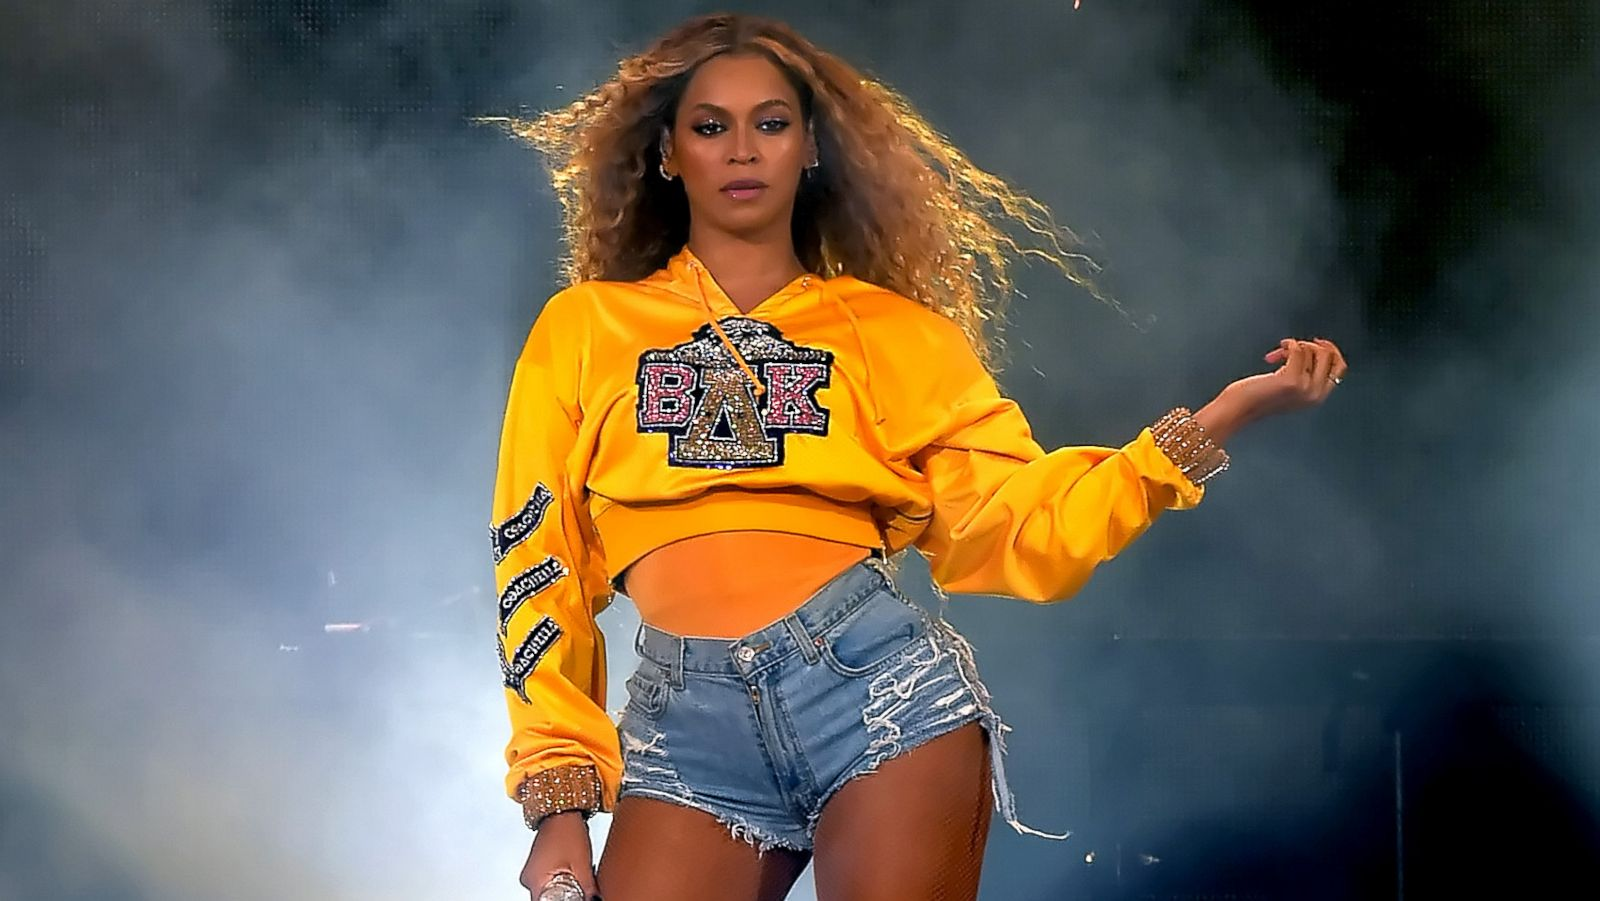 Forum on this topic: Beyoncé Explains Why Women Need To Own , beyonc-explains-why-women-need-to-own/